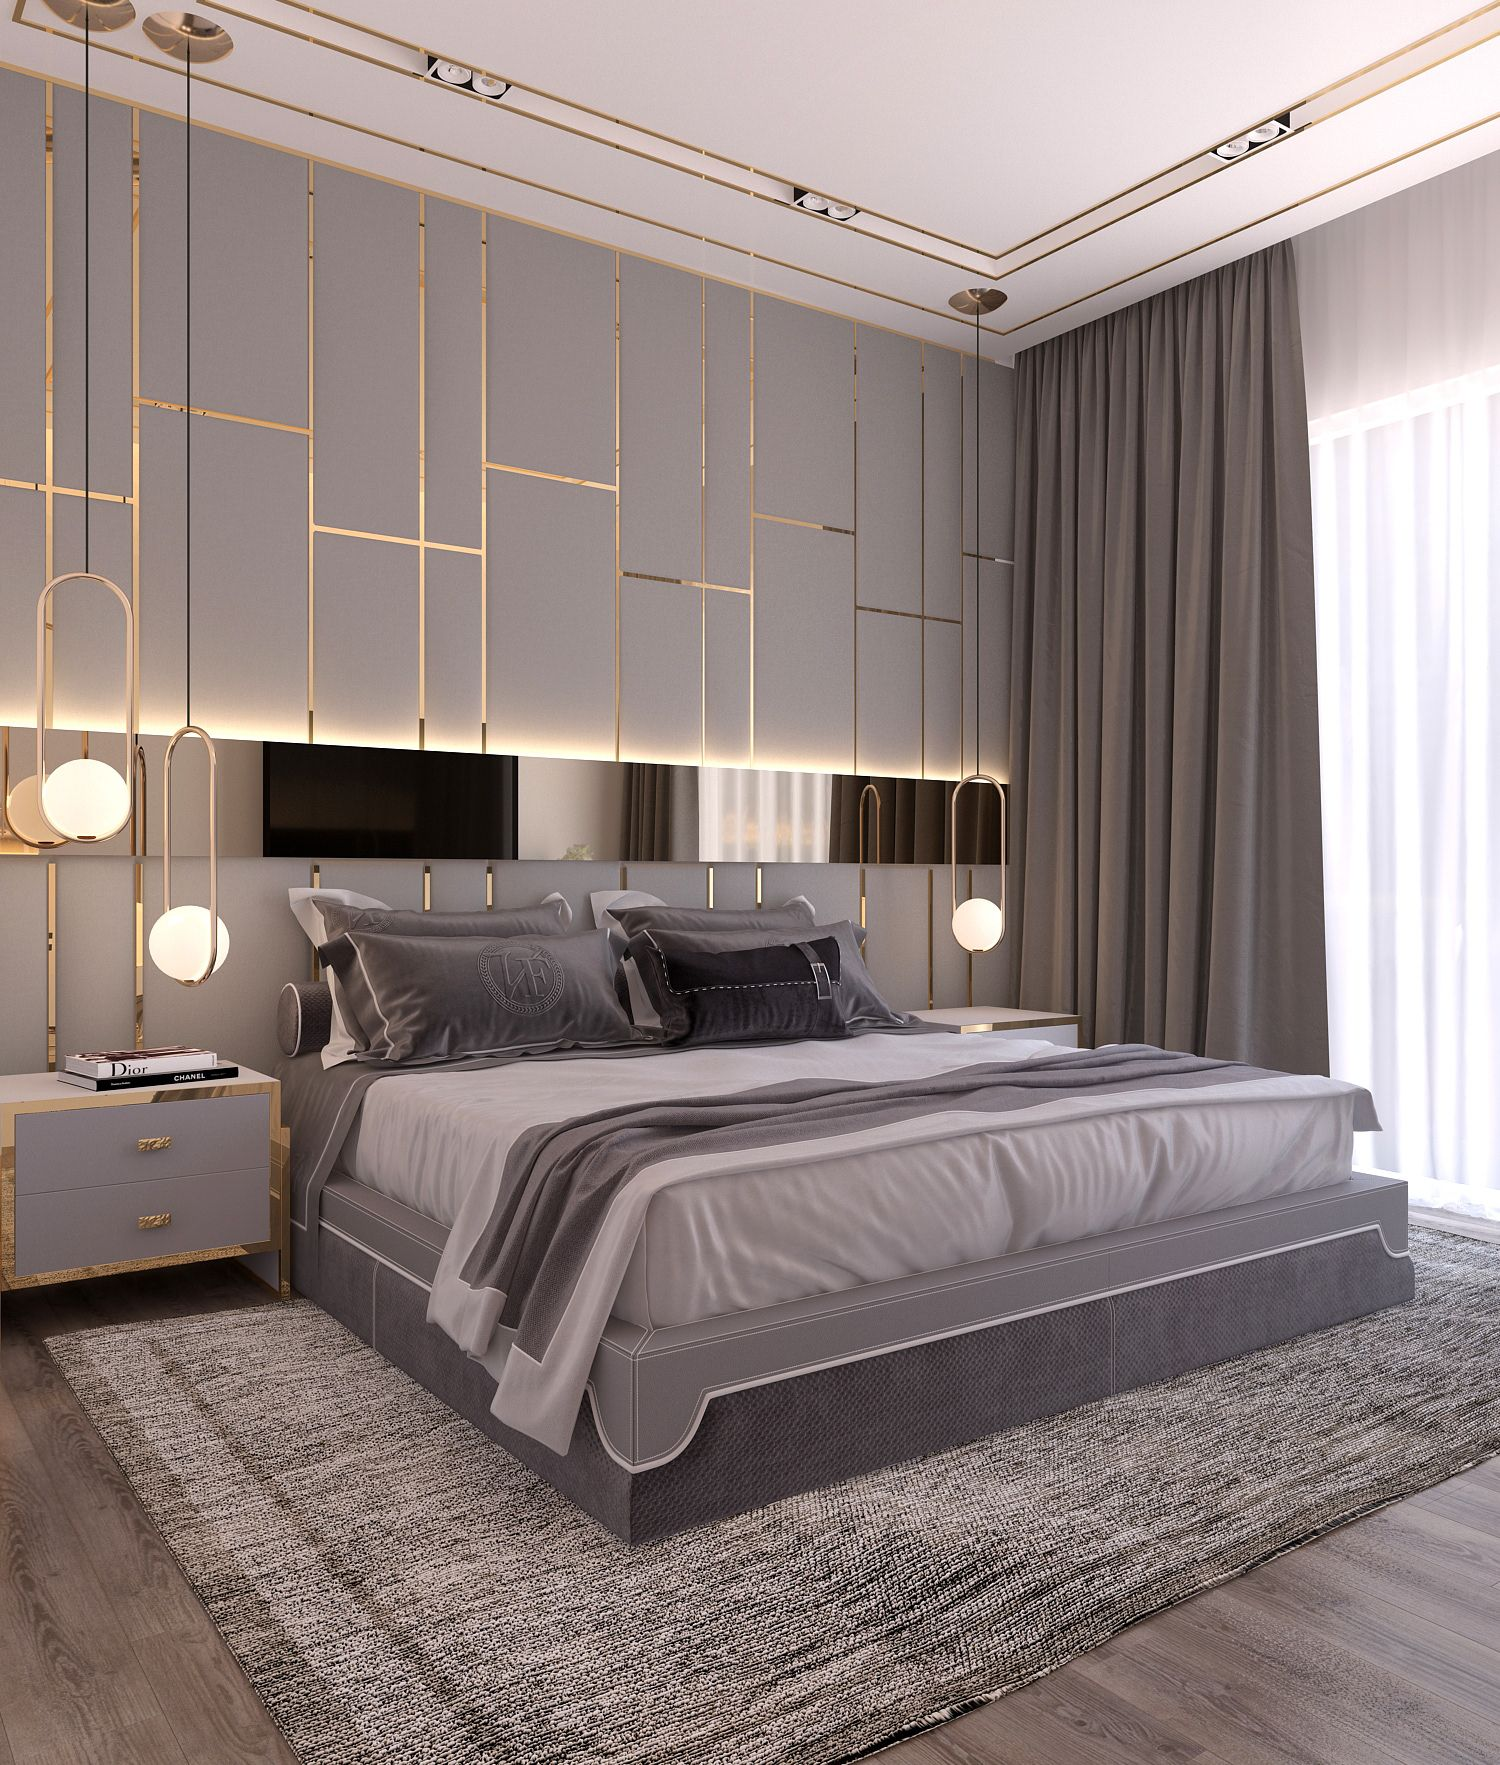 Best Modern Style Bedroom Dubai Project On Behance Modern 400 x 300